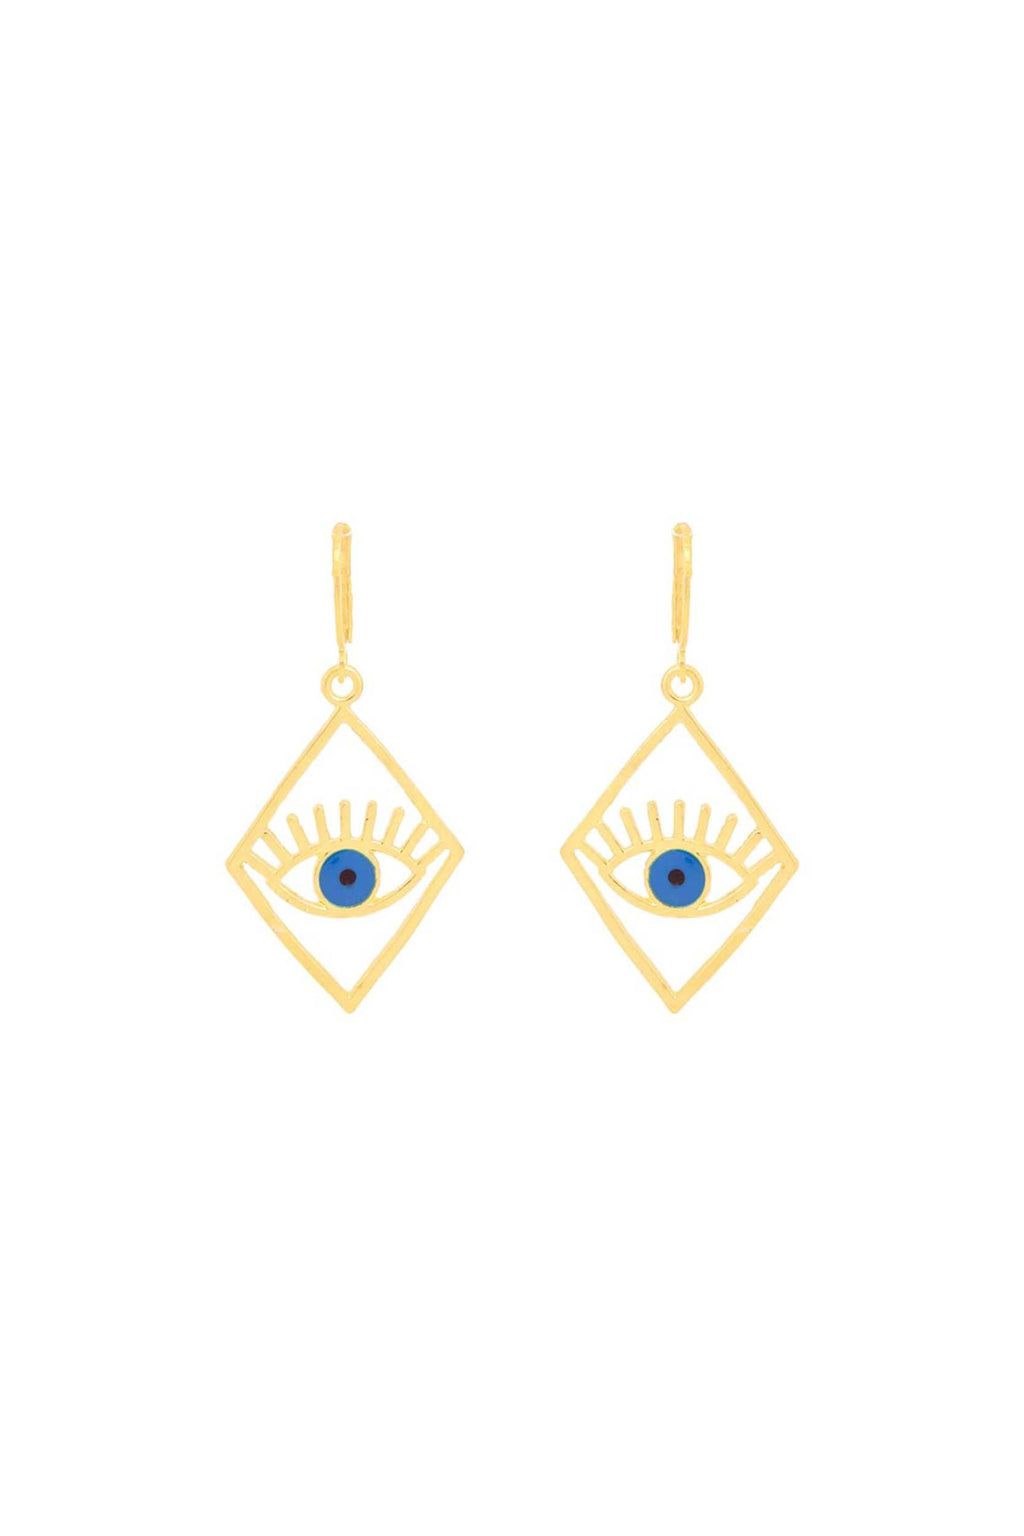 Third Eye Earrings | You & Eye | Fashion Accessories | Earring